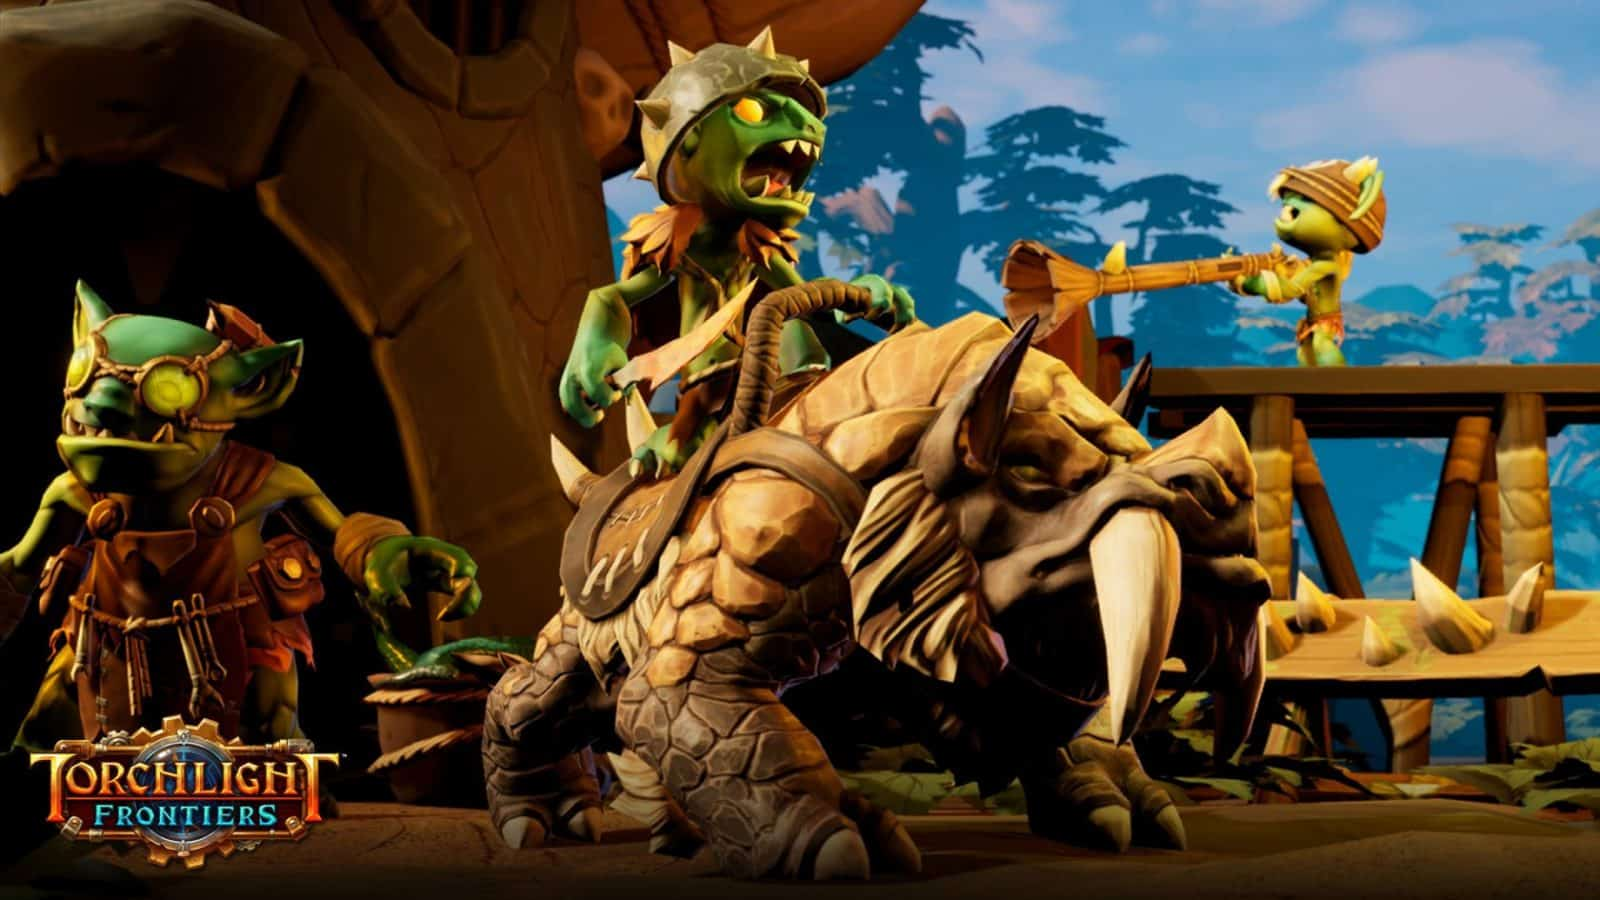 Torchlight Frontiers